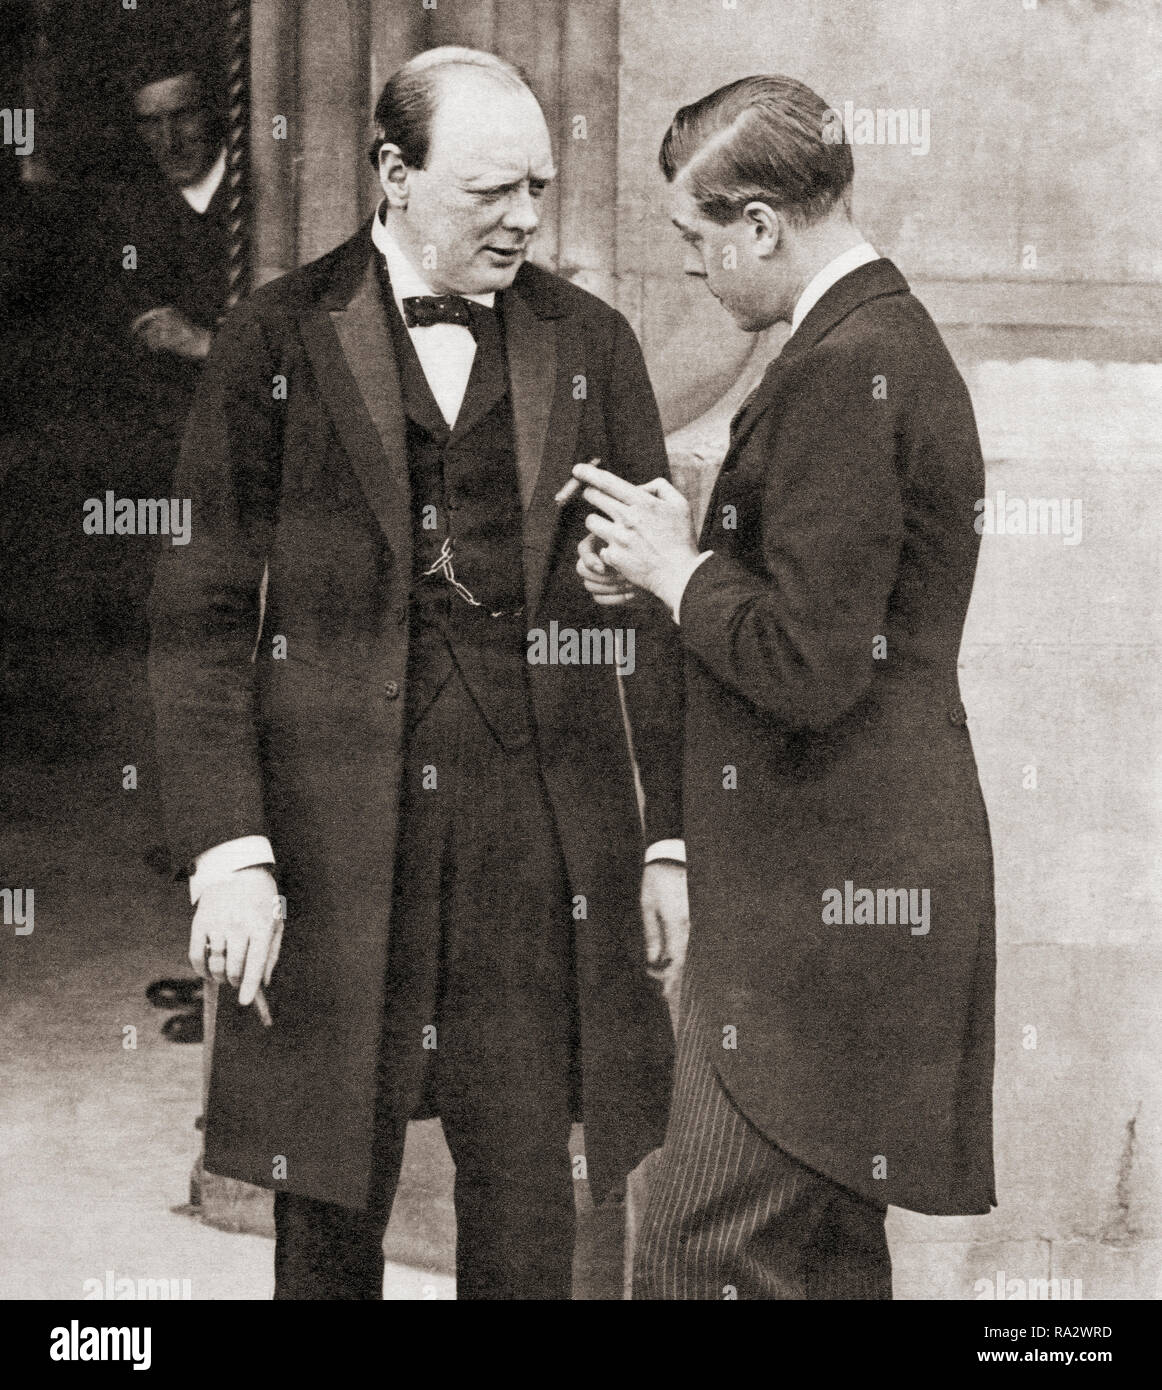 Winston Churchill, seen here in 1919 with the Prince of Wales, future Edward VIII.  Sir Winston Leonard Spencer-Churchill, 1874 –1965. British politician, statesman, army officer, and writer, who was Prime Minister of the United Kingdom from 1940 to 1945 and again from 1951 to 1955. - Stock Image